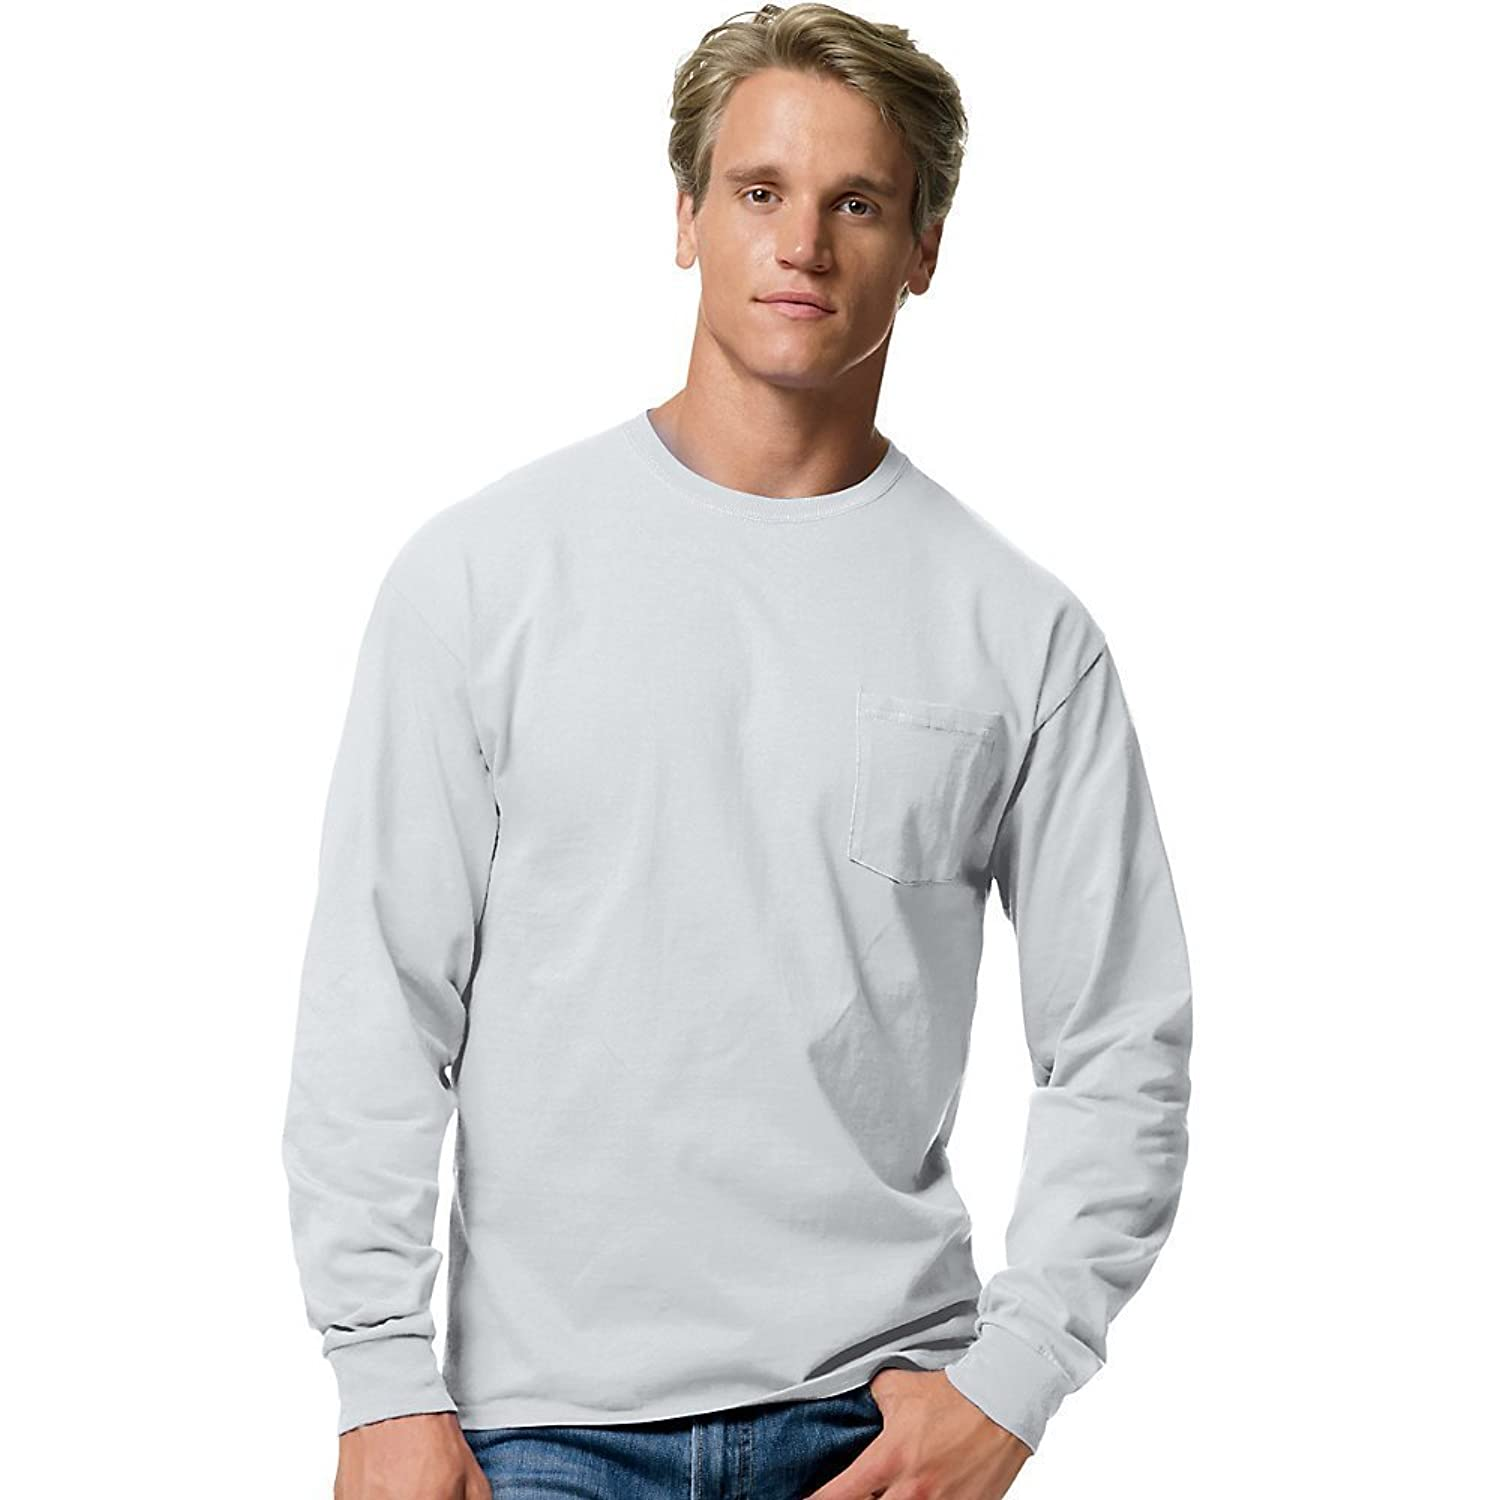 Hanes - Tagless Long Sleeve T-Shirt with a Pocket - 5596 | Amazon.com